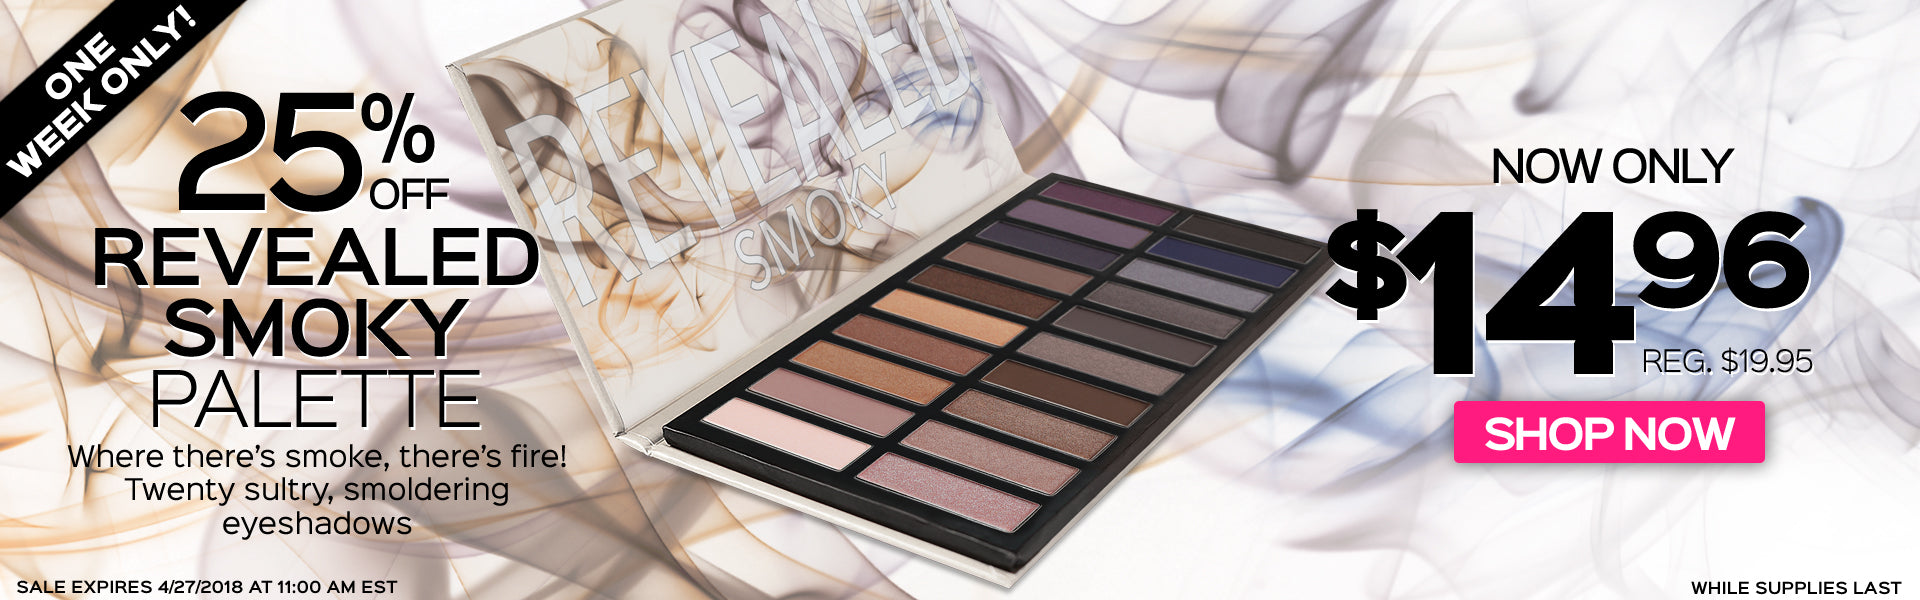 25% Off Revealed Smoky Eyeshadow Palette! Now Only $14.96